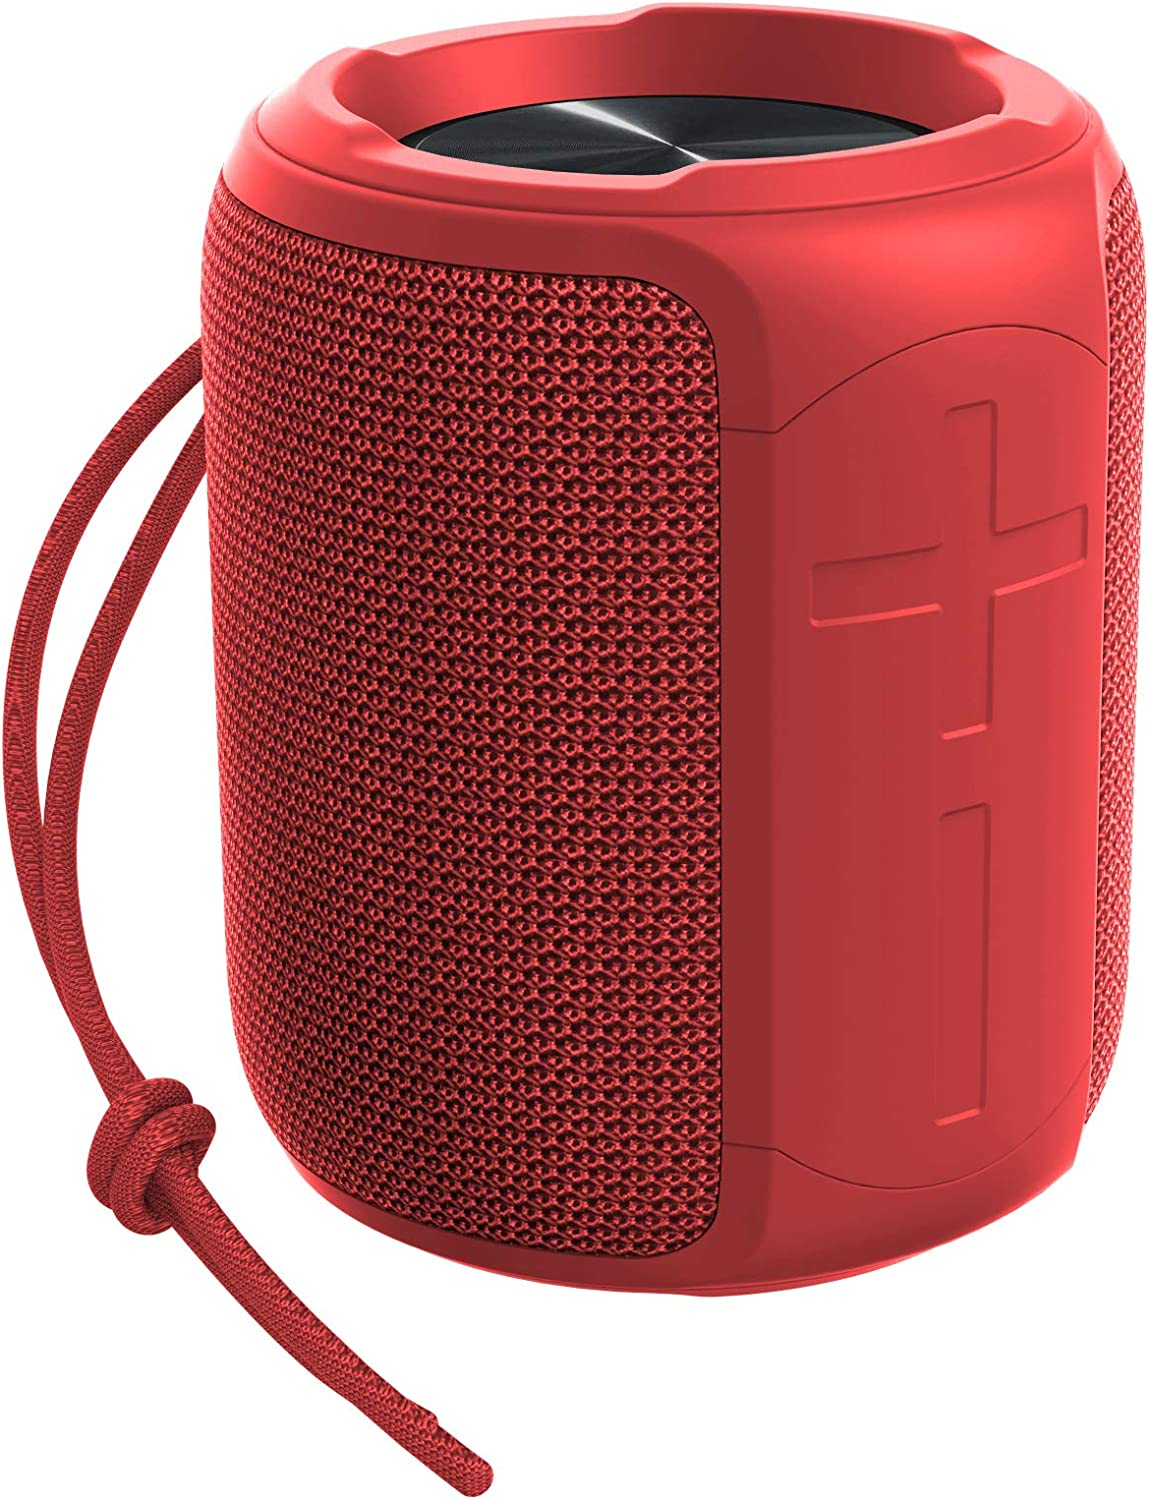 Sonic Boom S-10 by SONNORA - Portable sold out Max 56% OFF Speak Bluetooth Waterproof